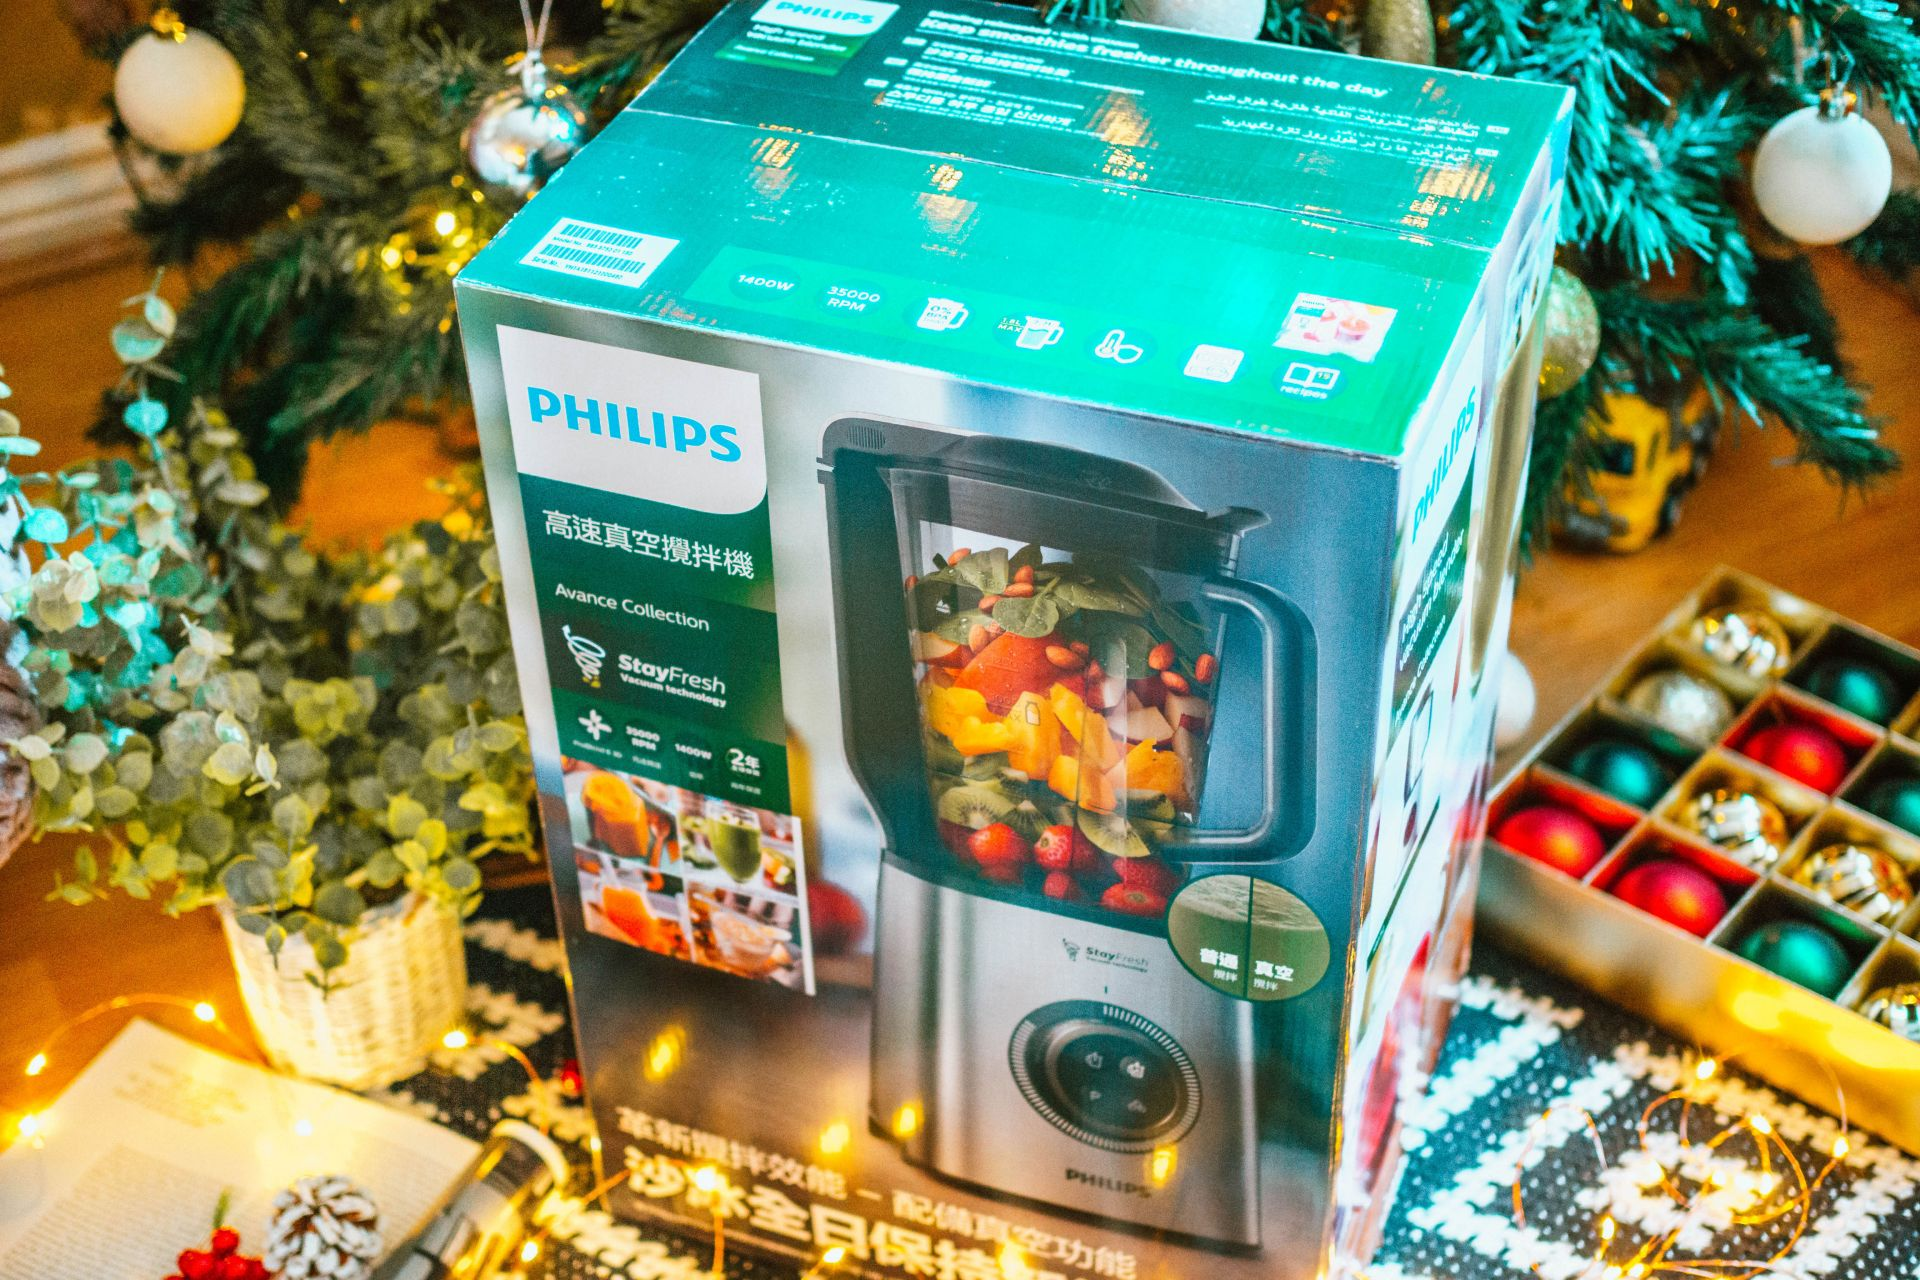 Philips Avance Blender Review